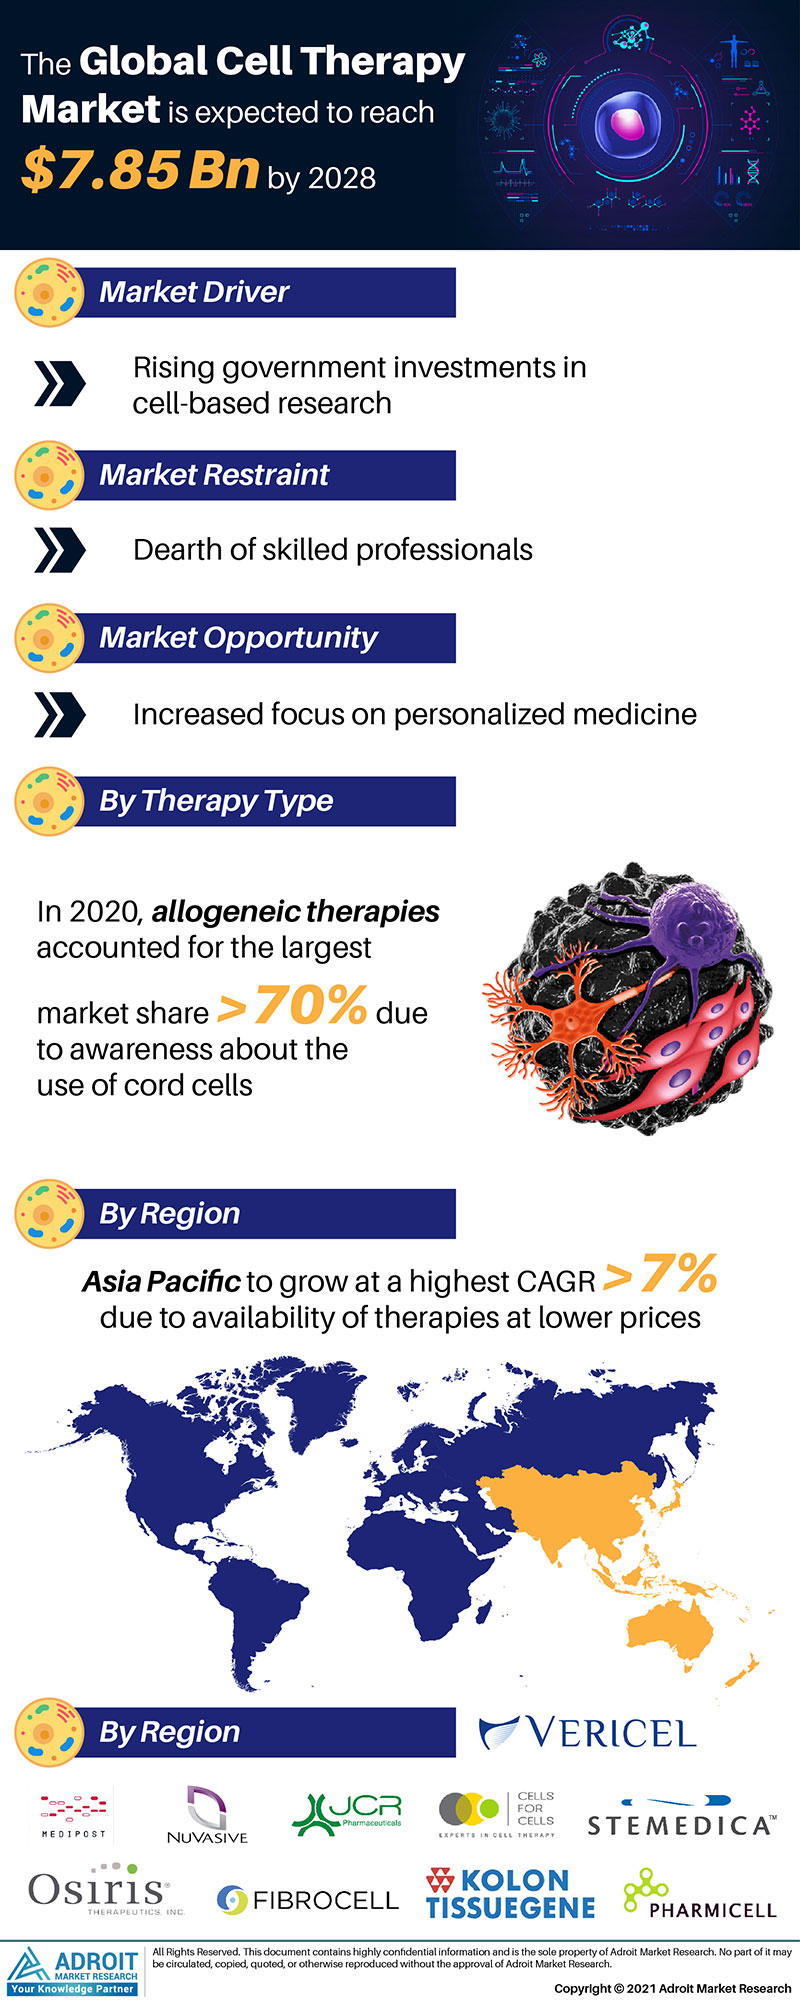 Global Cell Therapy Market Size 2017 By Type, Device, Region and Forecast 2018 to 2025